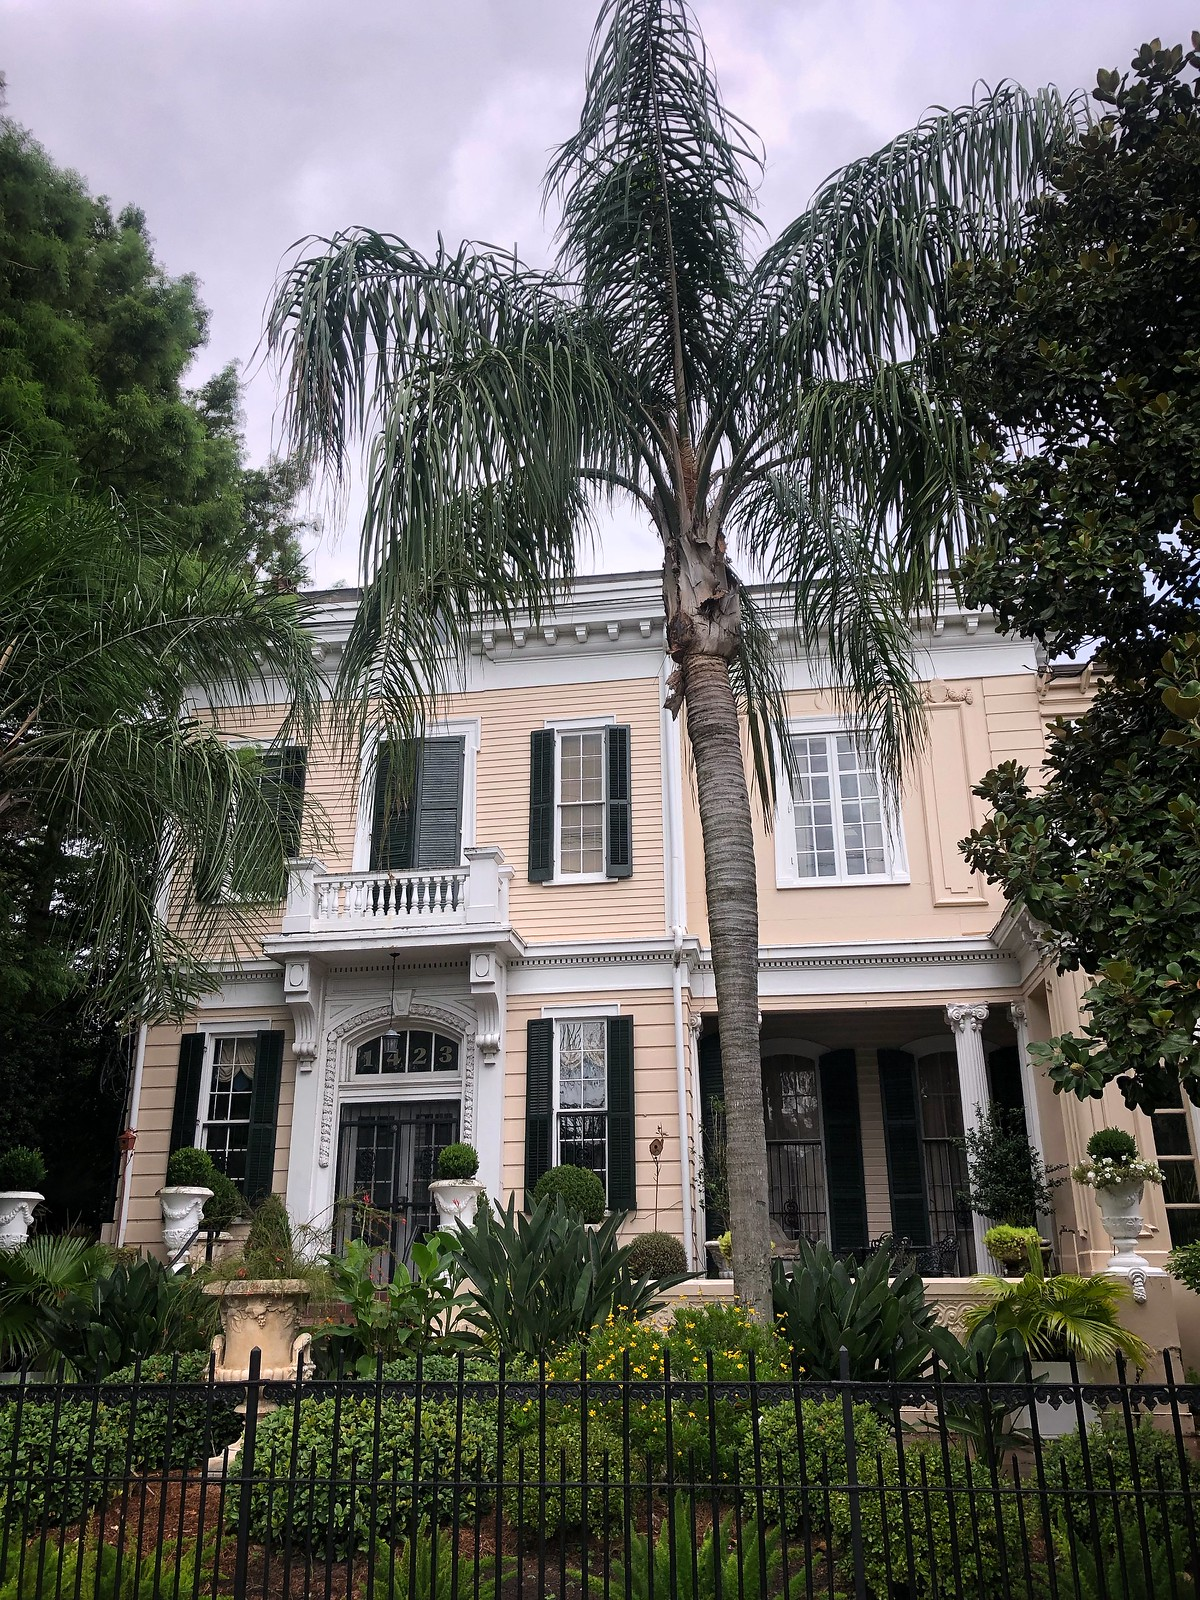 Garden District | How to Spend 48 Hours in New Orleans in the Summer | New Orleans Travel Guide | What to do in New Orleans | 2 Days in New Orleans | Best Things to do in New Orleans | First Timer's Guide to NOLA | NOLA Travel Guide | 2 Day Itinerary for New Orleans